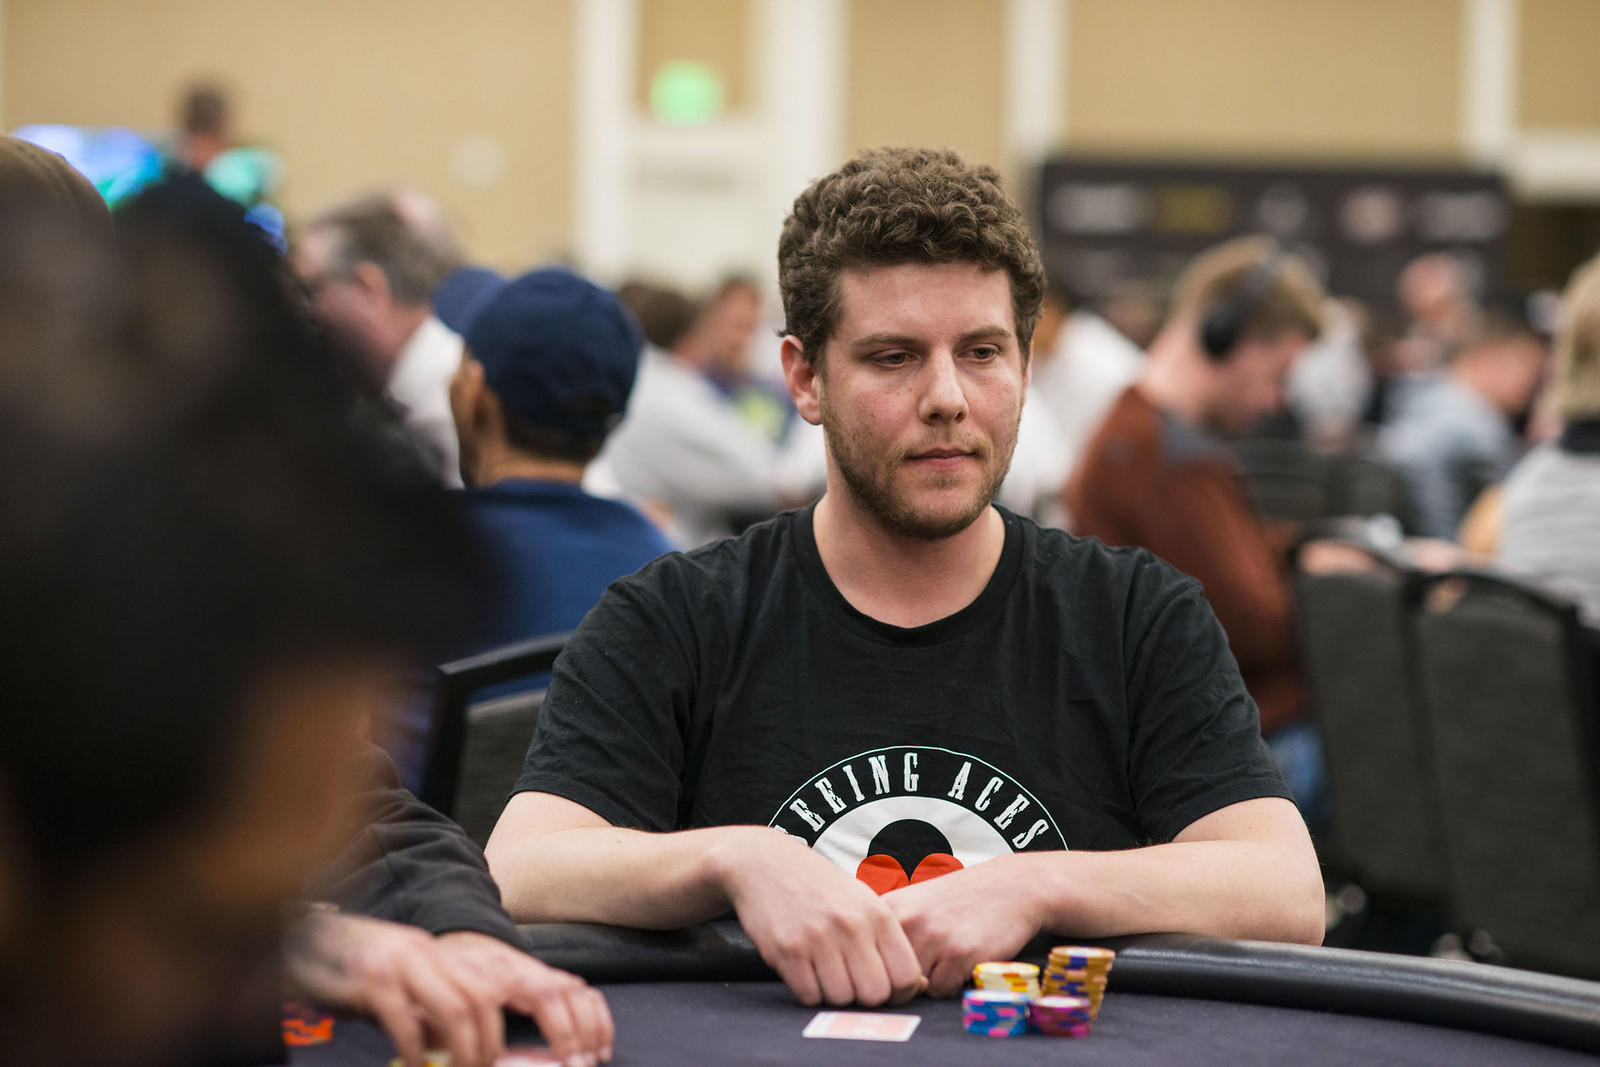 Wpt la poker classic 2017 results how to tell poker bluff